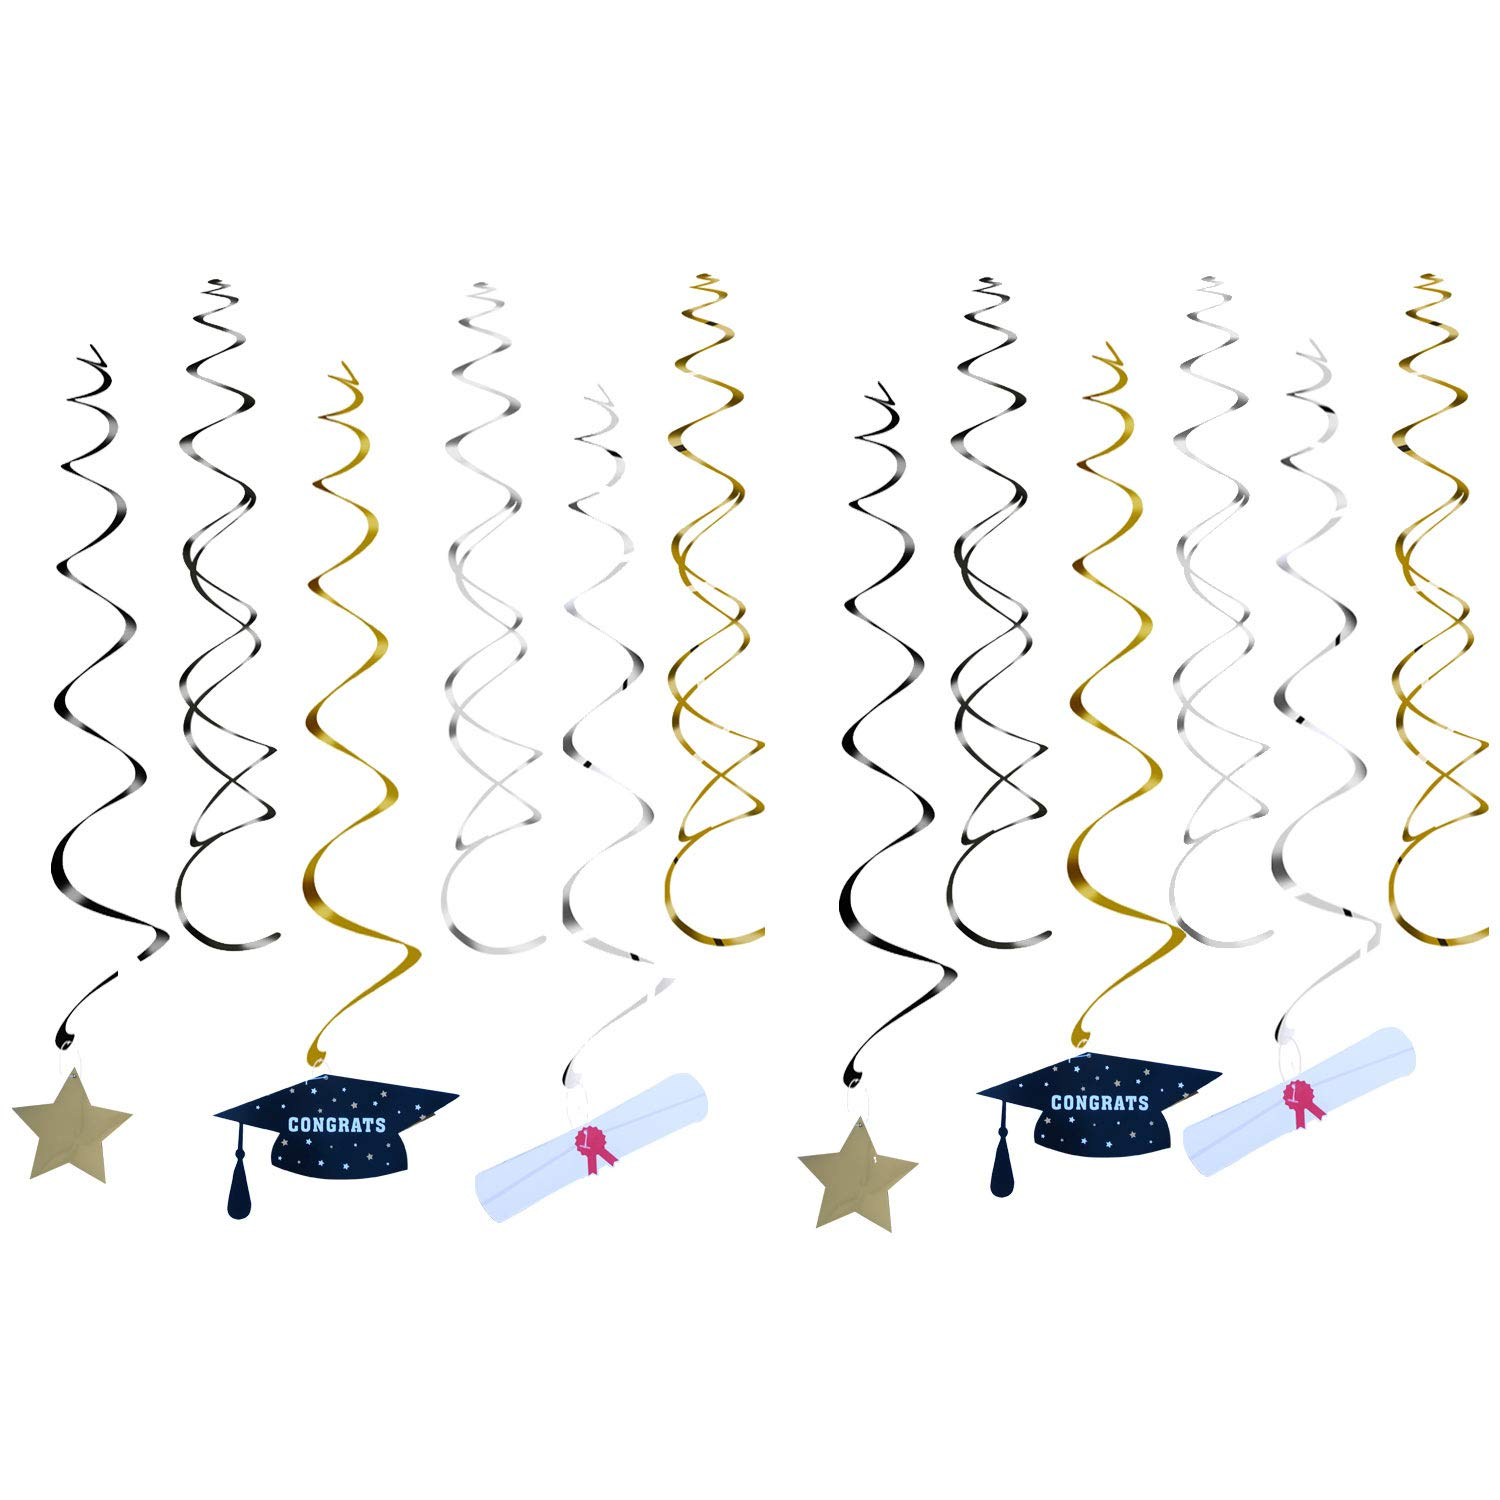 Graduation Party Supplies 2019 Graduation Party Decorations Graduation Banner Congratulations Banner Hang Swirls and Black & Red 2019 Balloons by Brillex (Image #4)